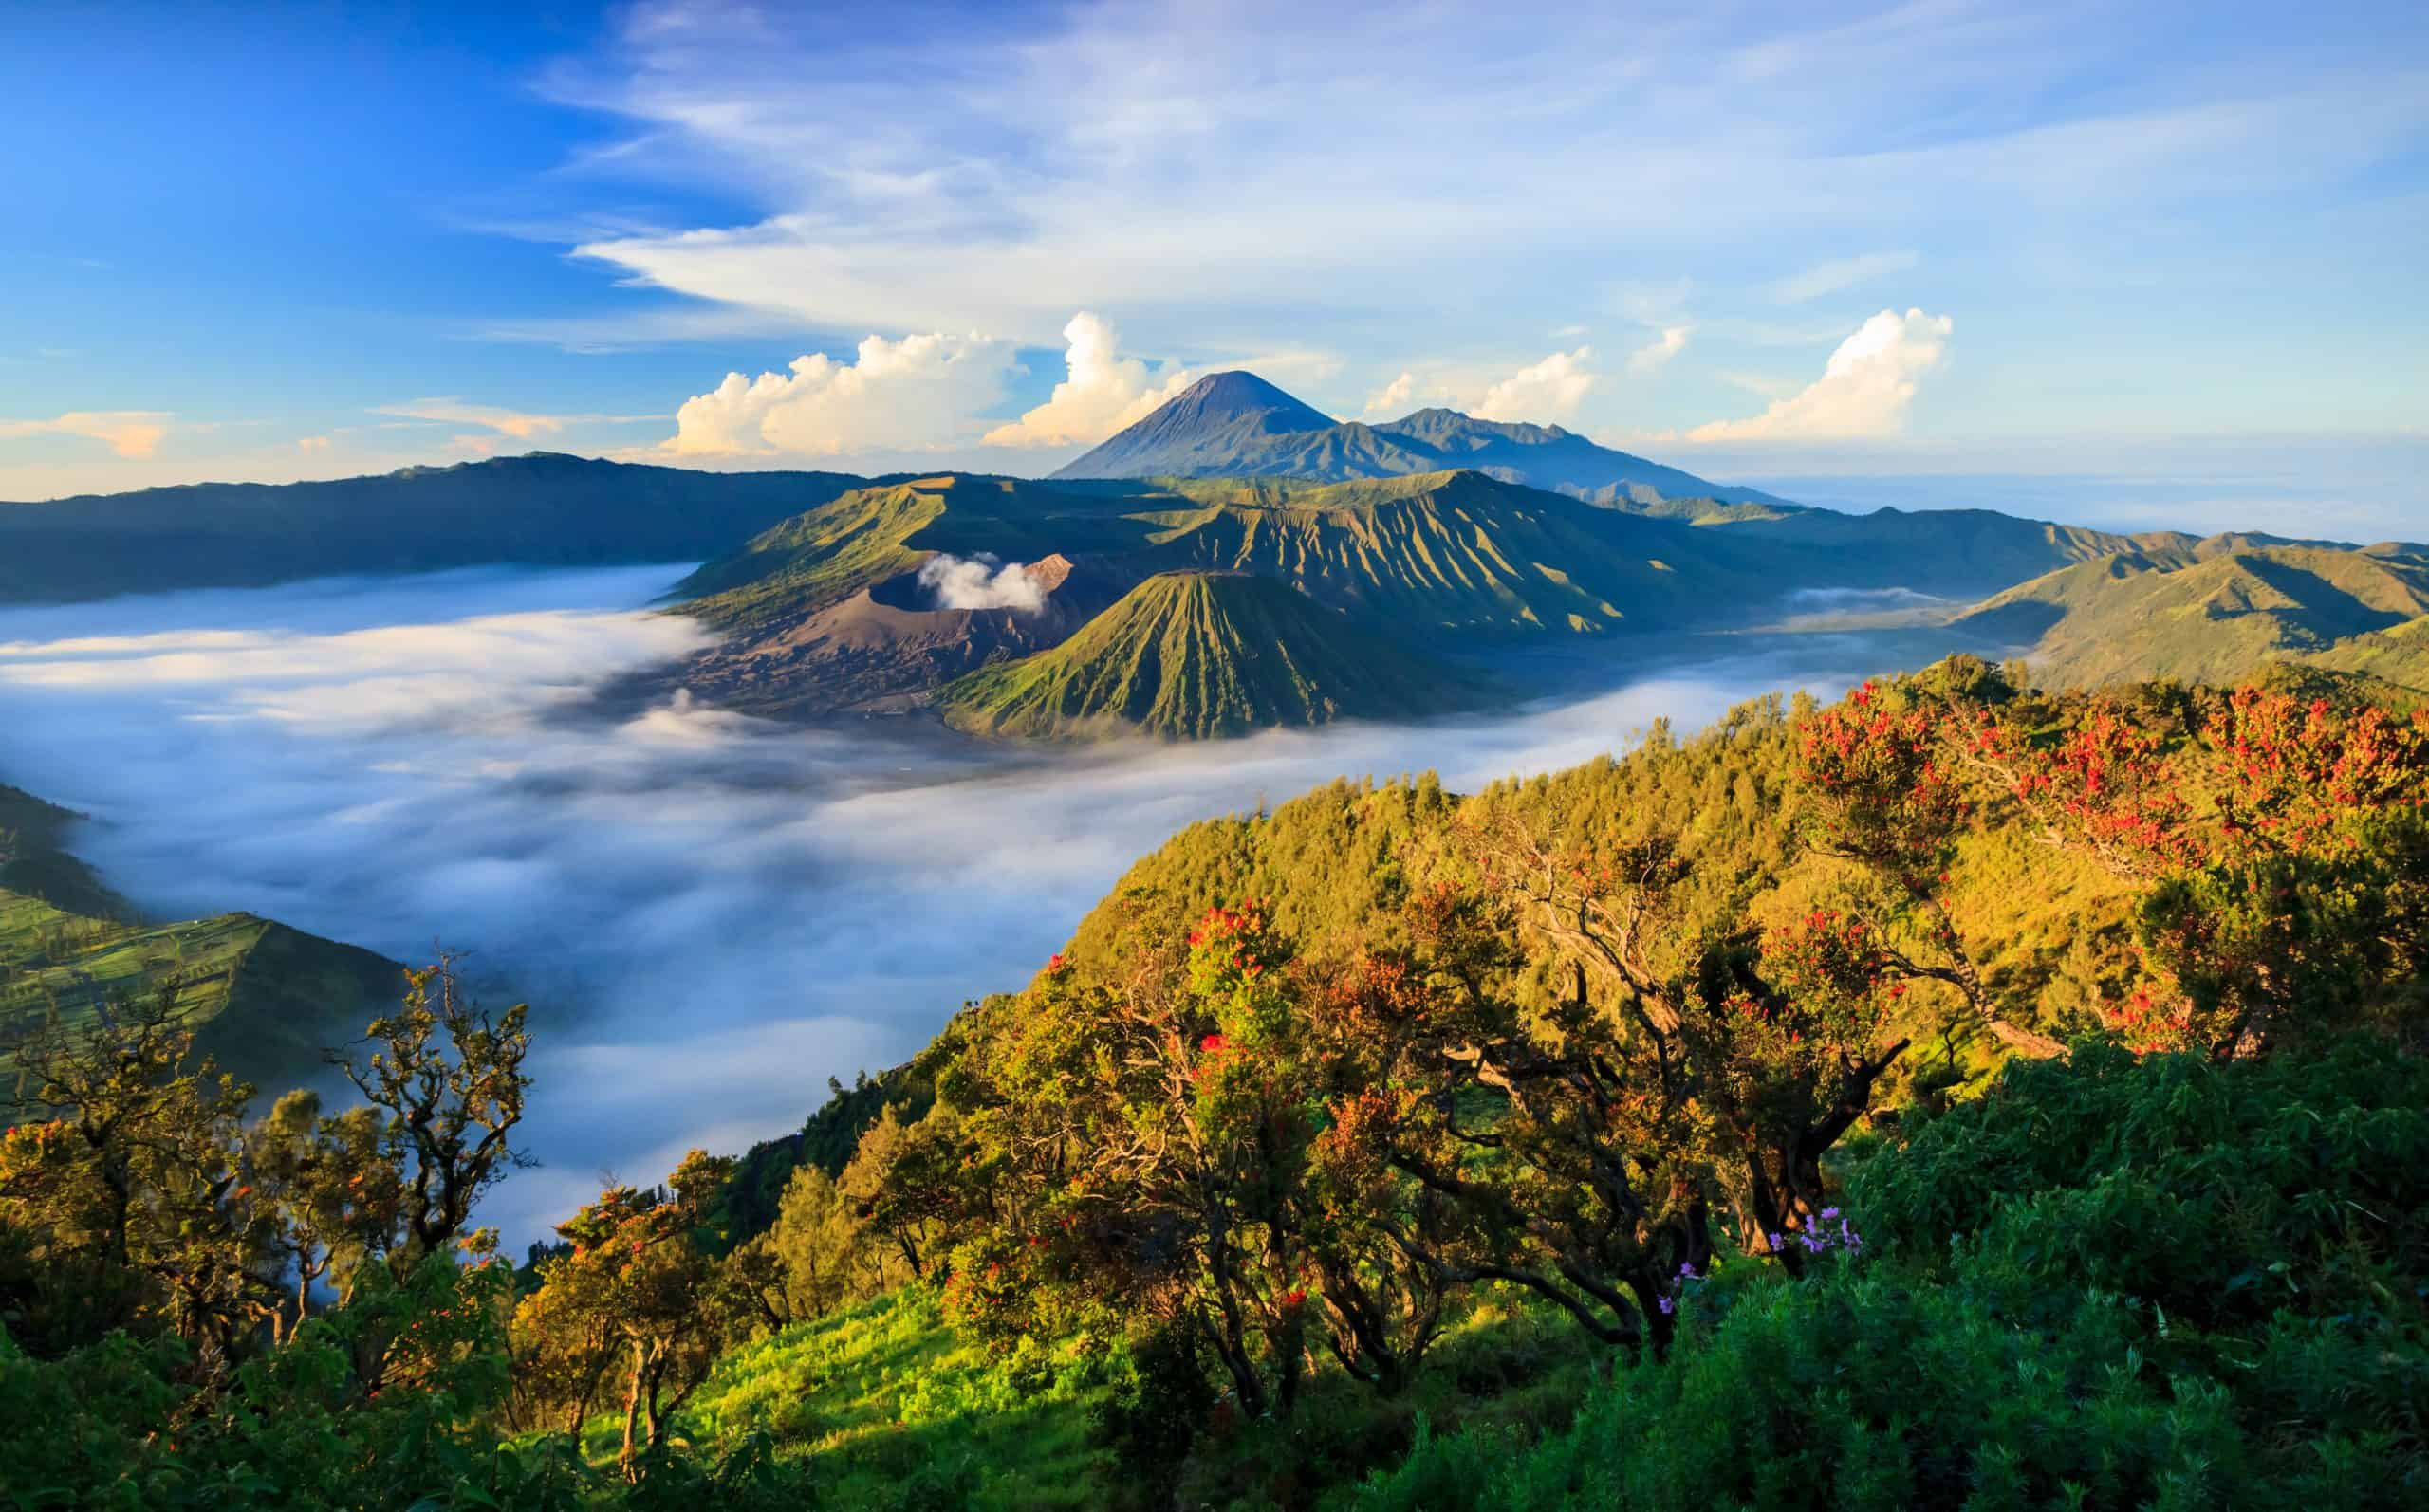 Bromo vulkaan op Java in Indonesië